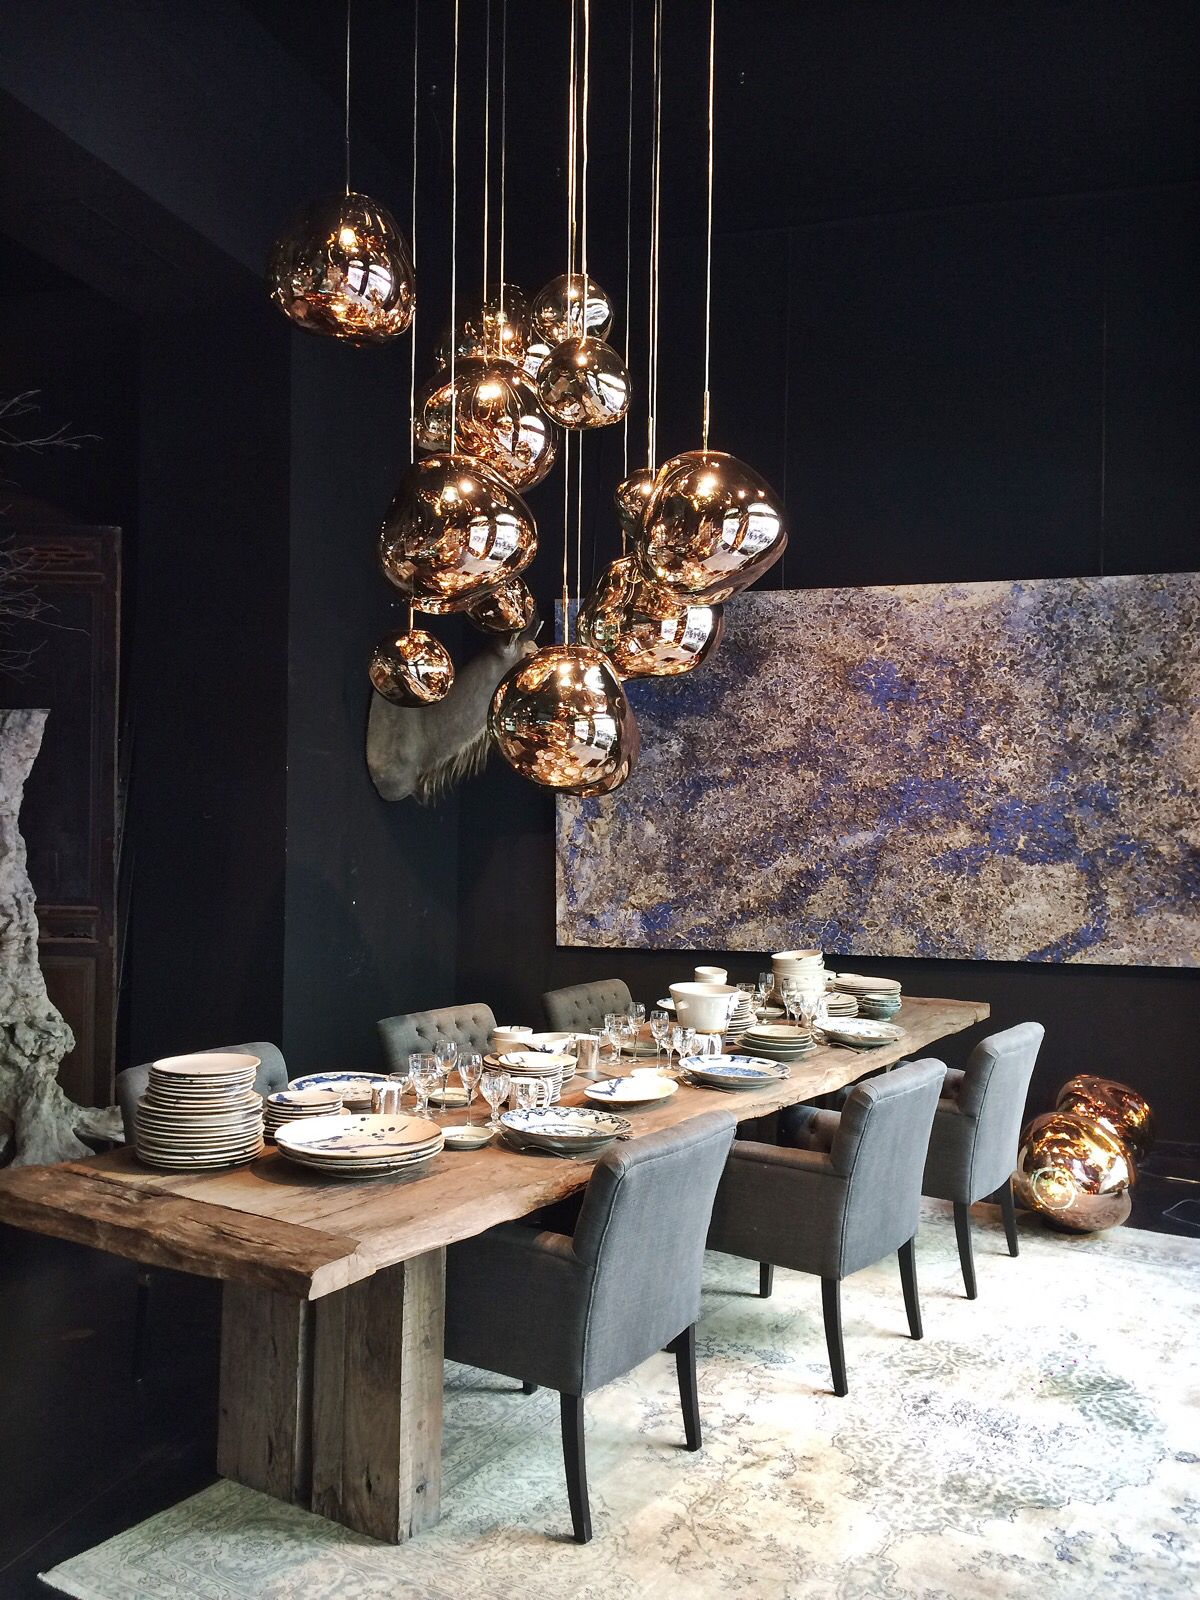 Tom Dixon Copper Shade From The Melt Family Lamp Free Form Polycarbonate Sculptural Shade Squashed Dining Lighting Dining Room Chandelier Modern Dining Room